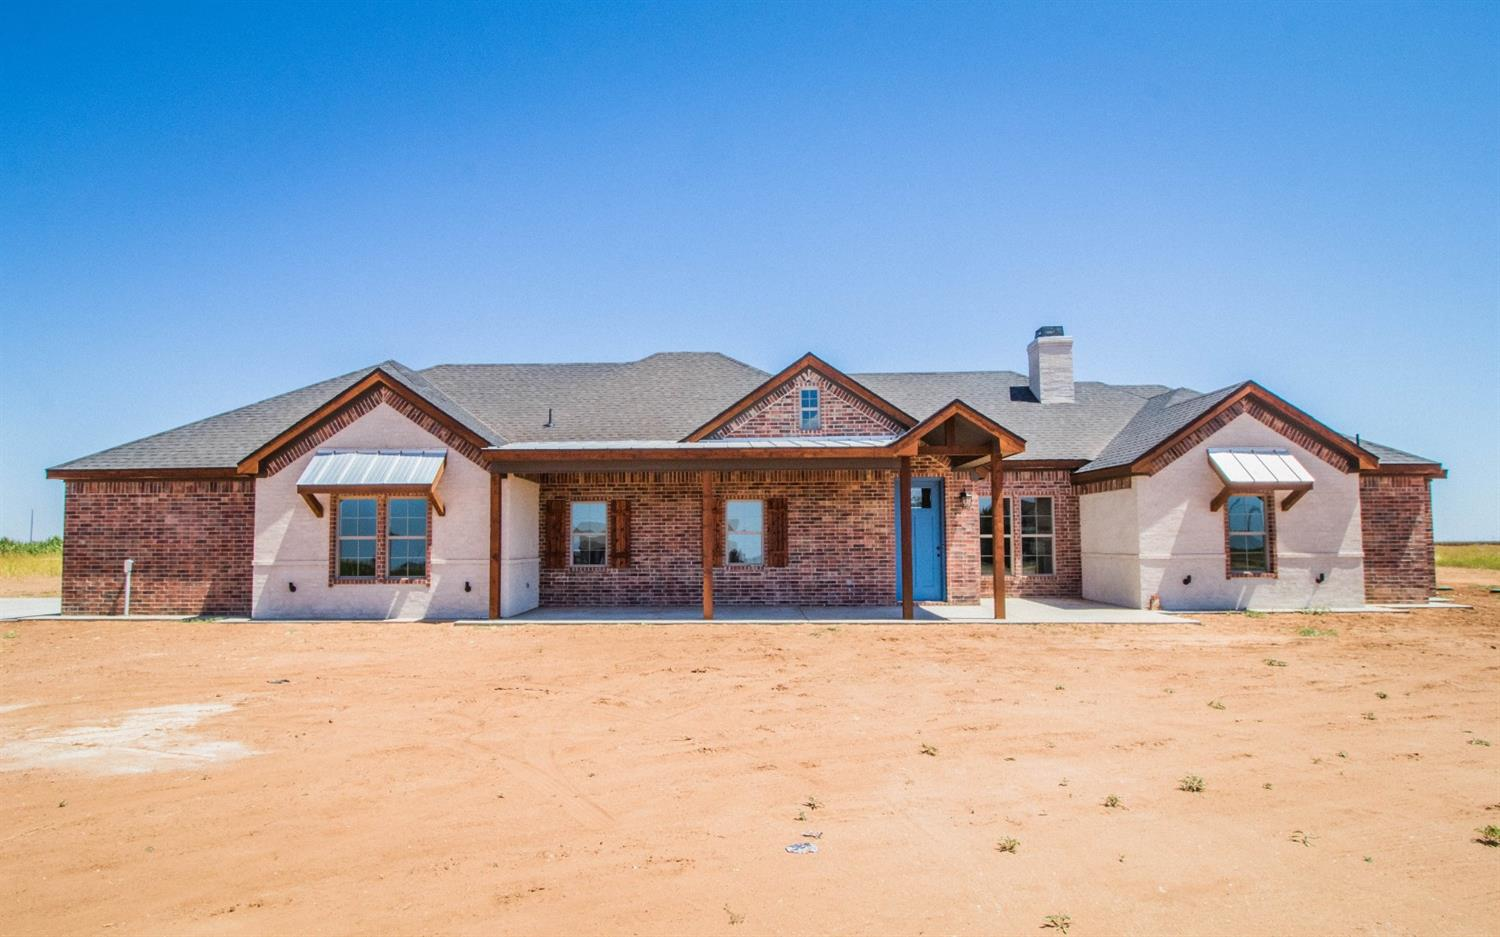 New construction, rustic contemporary home on 2.25 acres in New Home ISD.  One of Abounding Building Traditions premier customized homes features an appealing walk-out ranch front porch.  For pet or show animal owners or even outdoor working, there is a garage shower area just for you!  The interior features a farm-style stainless sink, double ovens, built-in impressive capacity refrigerator & granite counter-tops throughout.  The walk-in gourmet pantry covers approximately 70 sq ft featuring ample lighting with it's own window.  The kitchen table-esque bar comfortably seats 4-6, dining room vinyl plank herringbone design.  Modern unique tile designs throughout.  You'll enjoy the wide open spaces from the inside out!